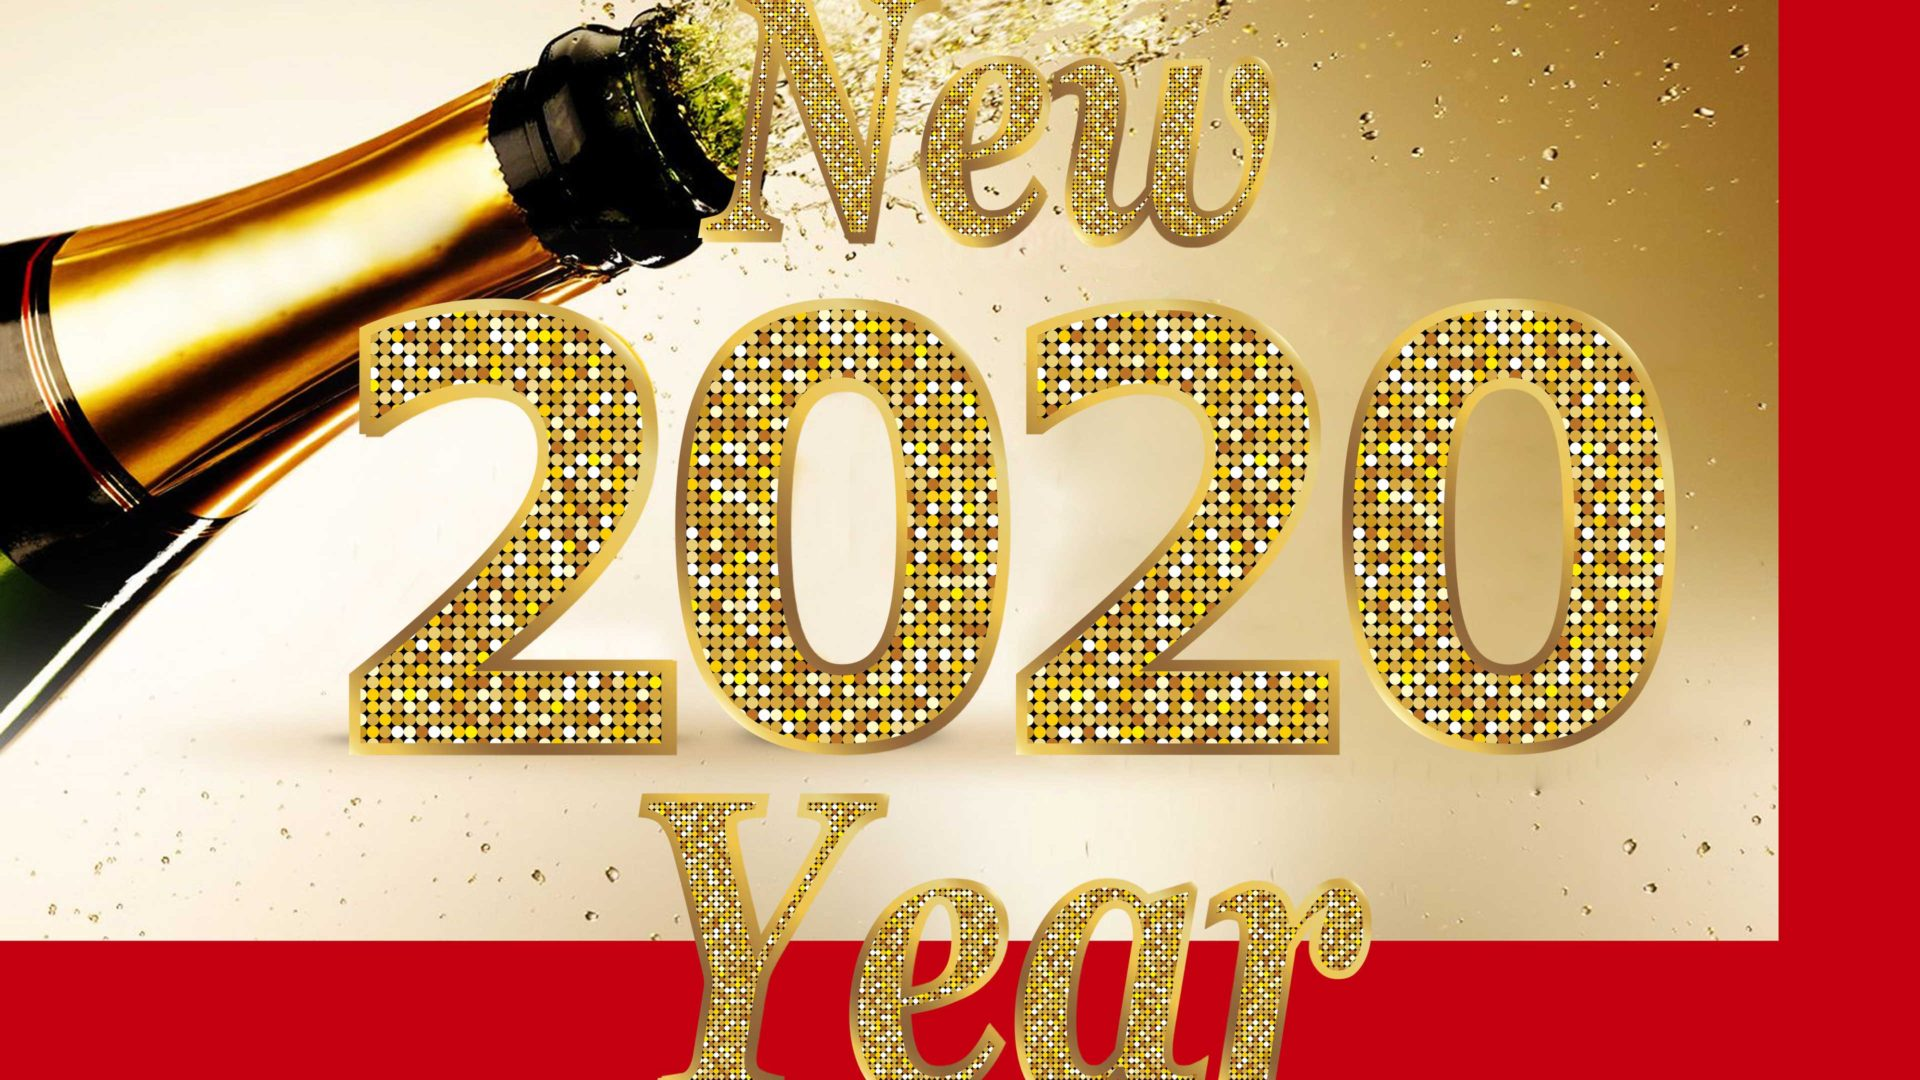 Happy New Year 2020 Sampin Bottle Photo 3d Wallpapers Hd 3840x2400 1920x1080